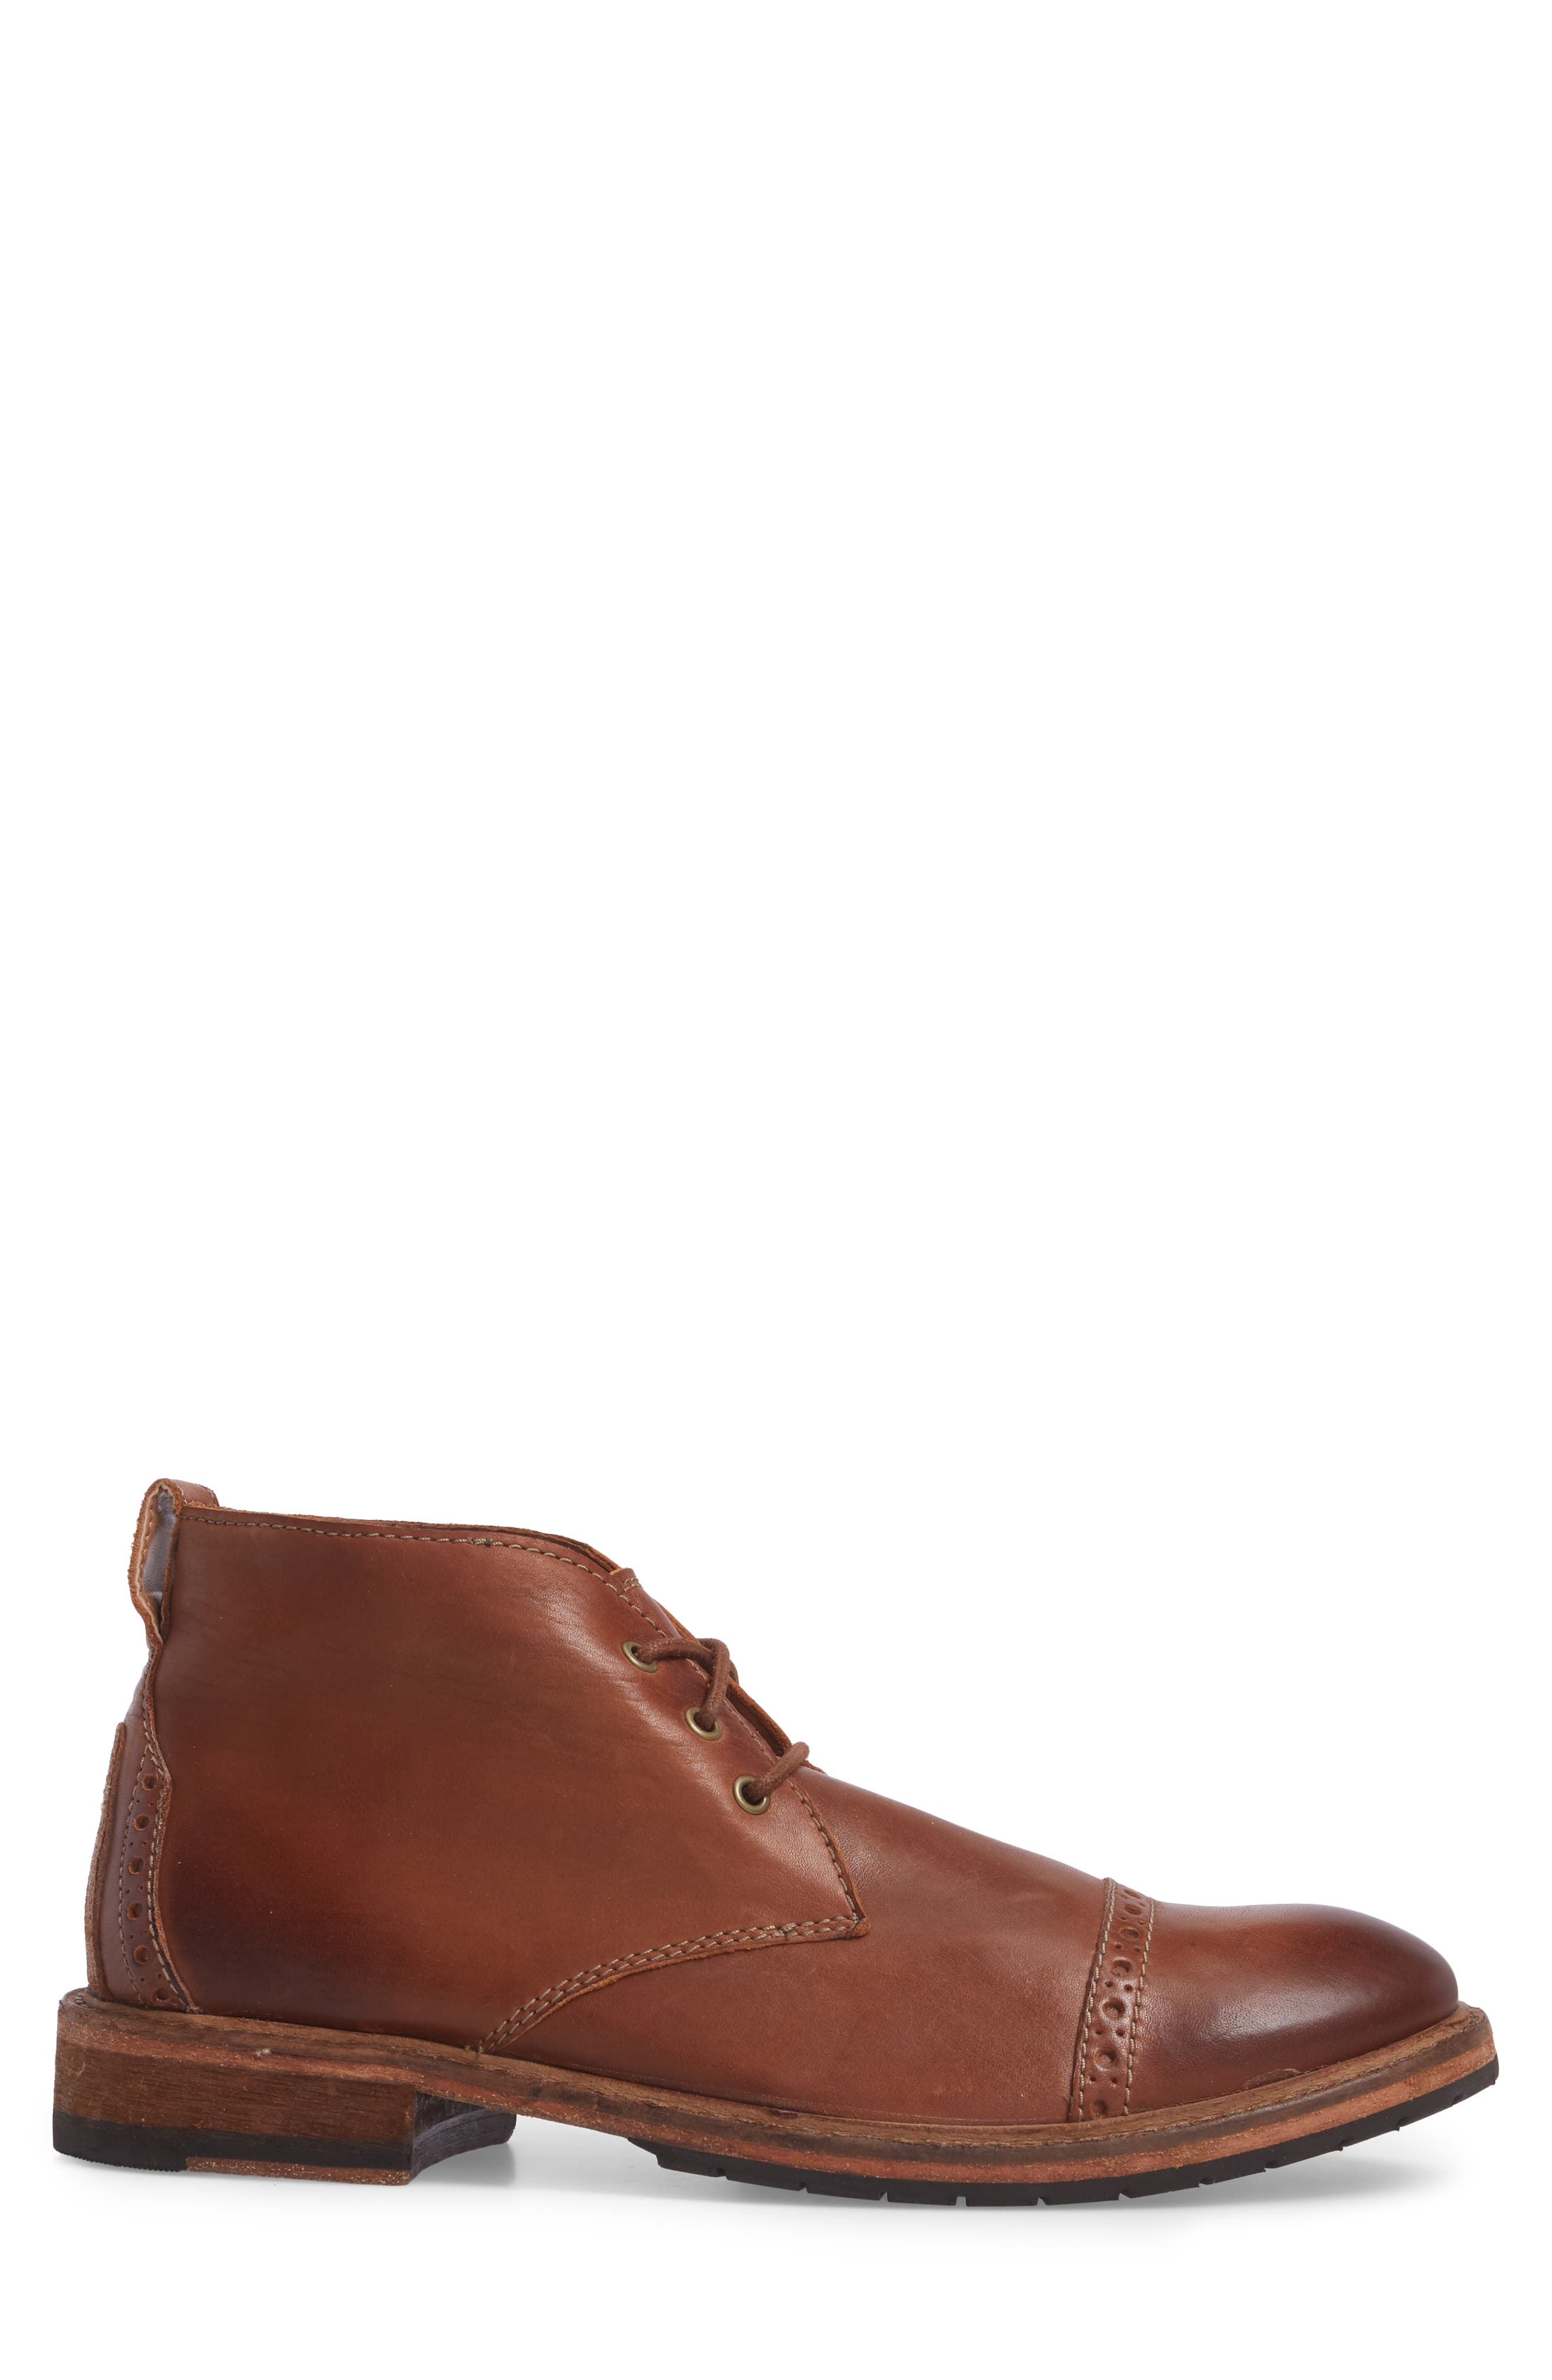 Clarkdale Water Resistant Chukka Boot,                             Alternate thumbnail 3, color,                             Dark Tan Leather